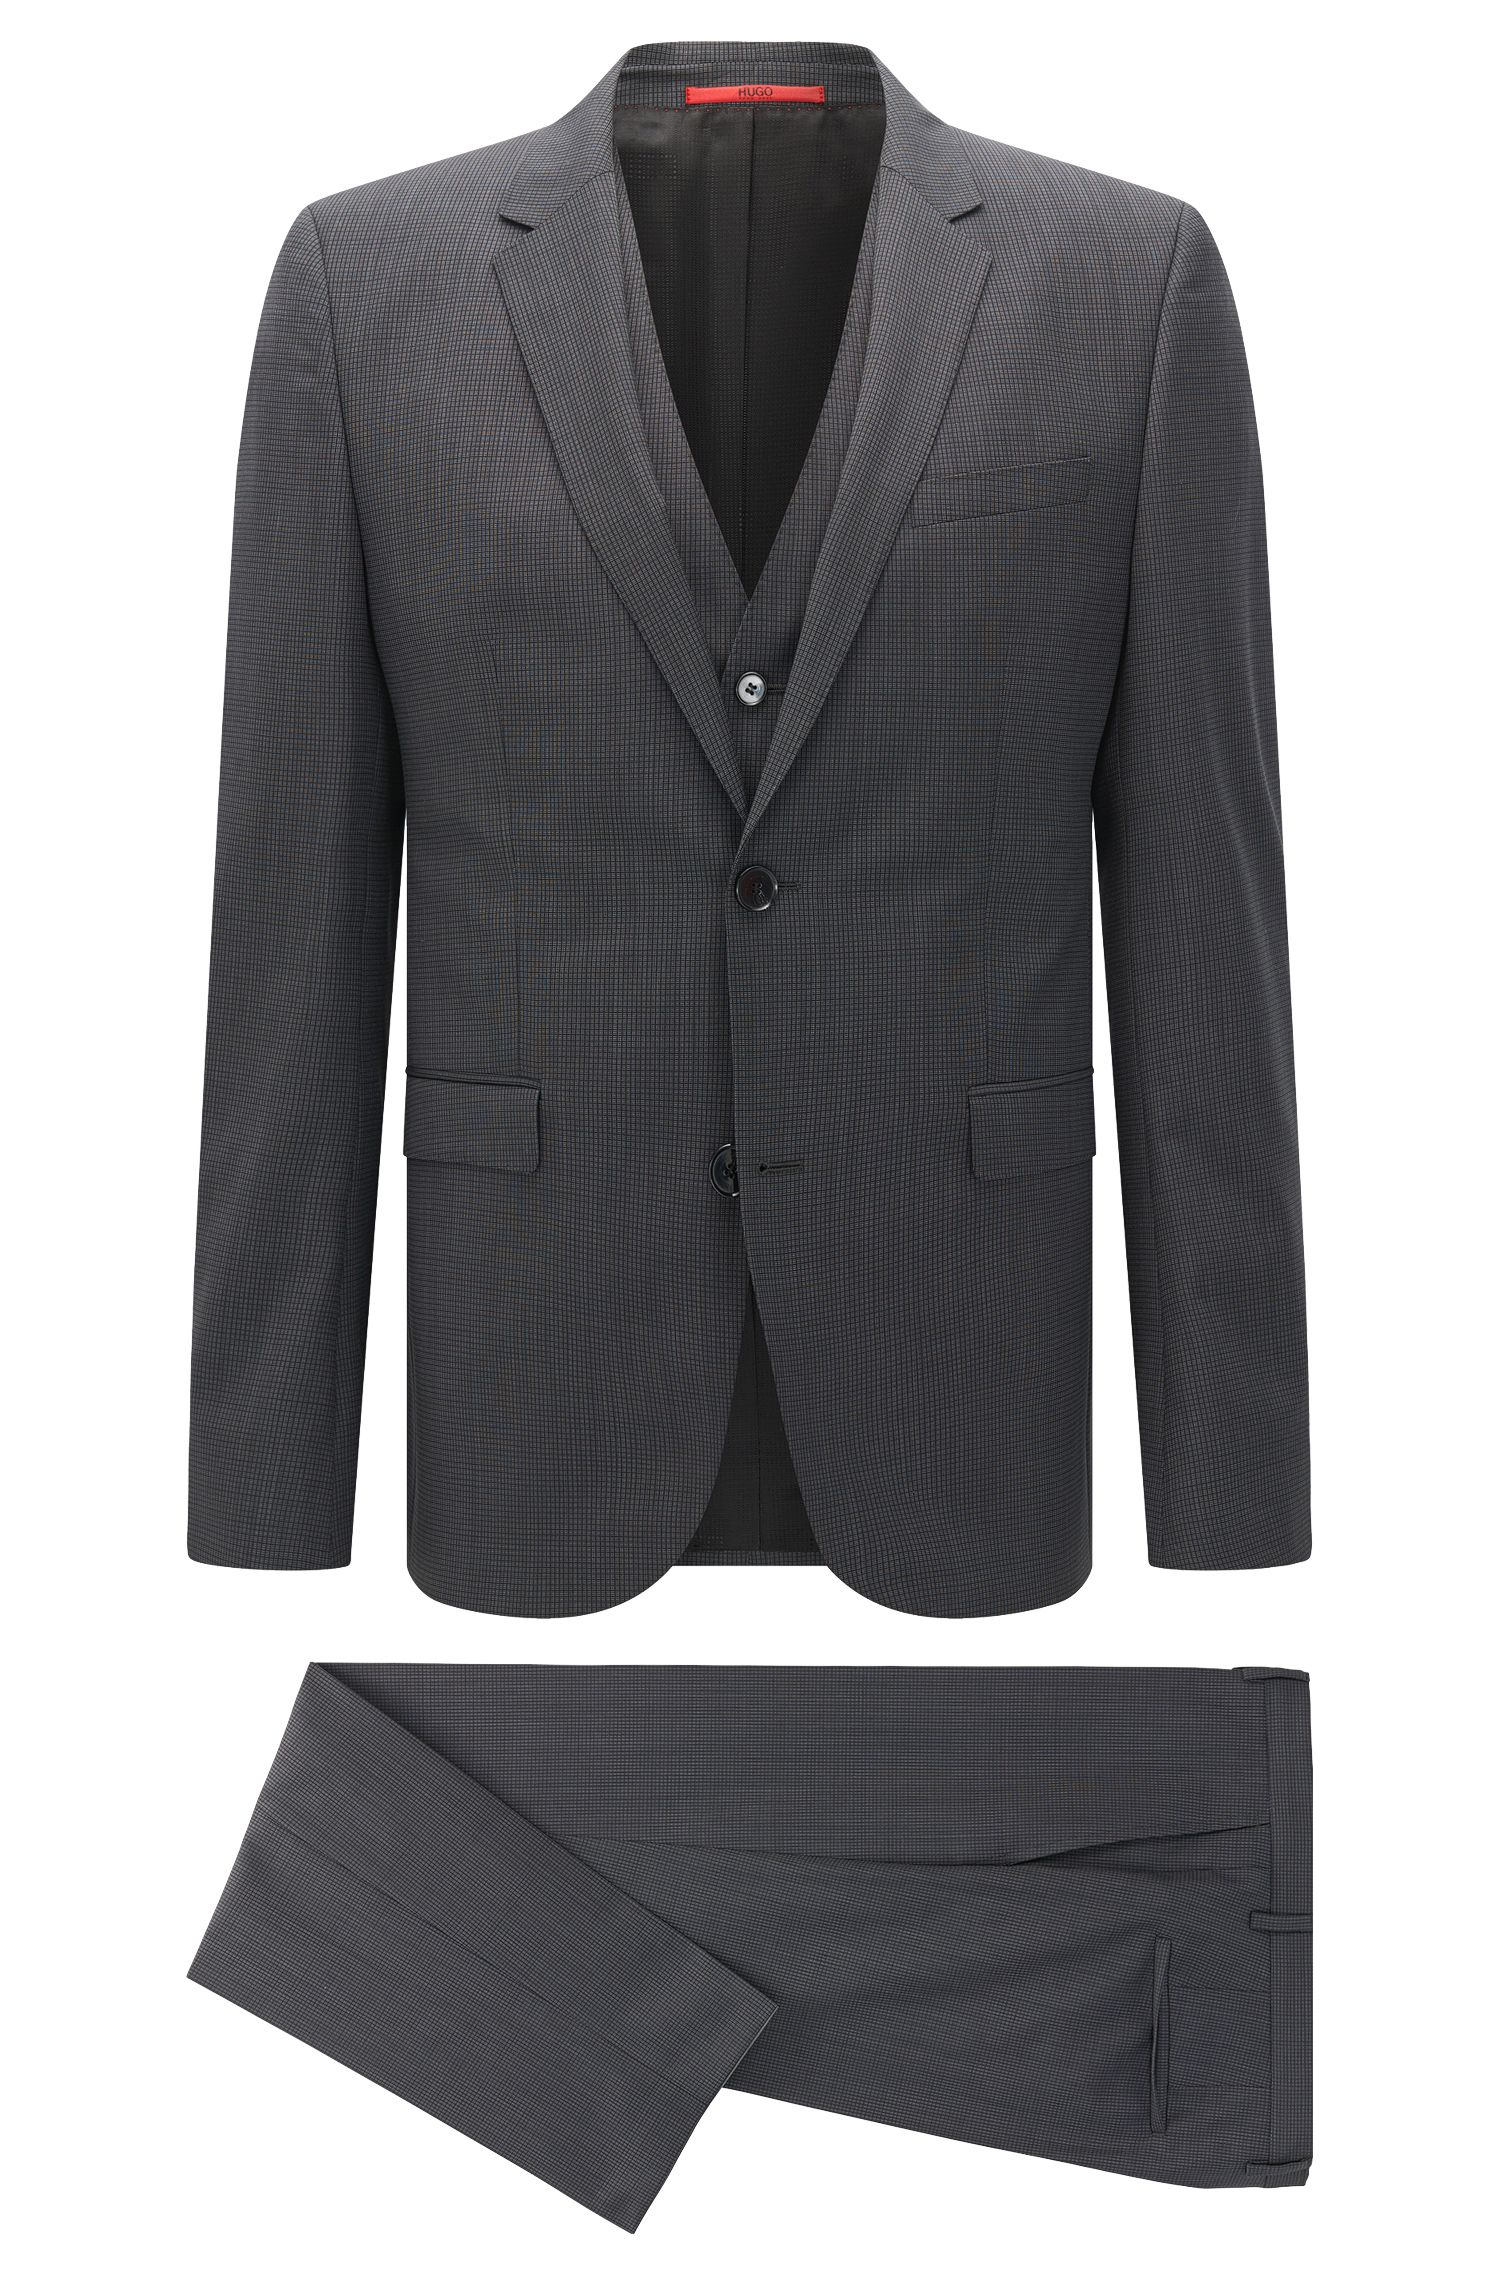 Checked Italian Super 120 Virgin Wool 3-Piece Suit, Slim Fit | Adwart/Wilard/Hets